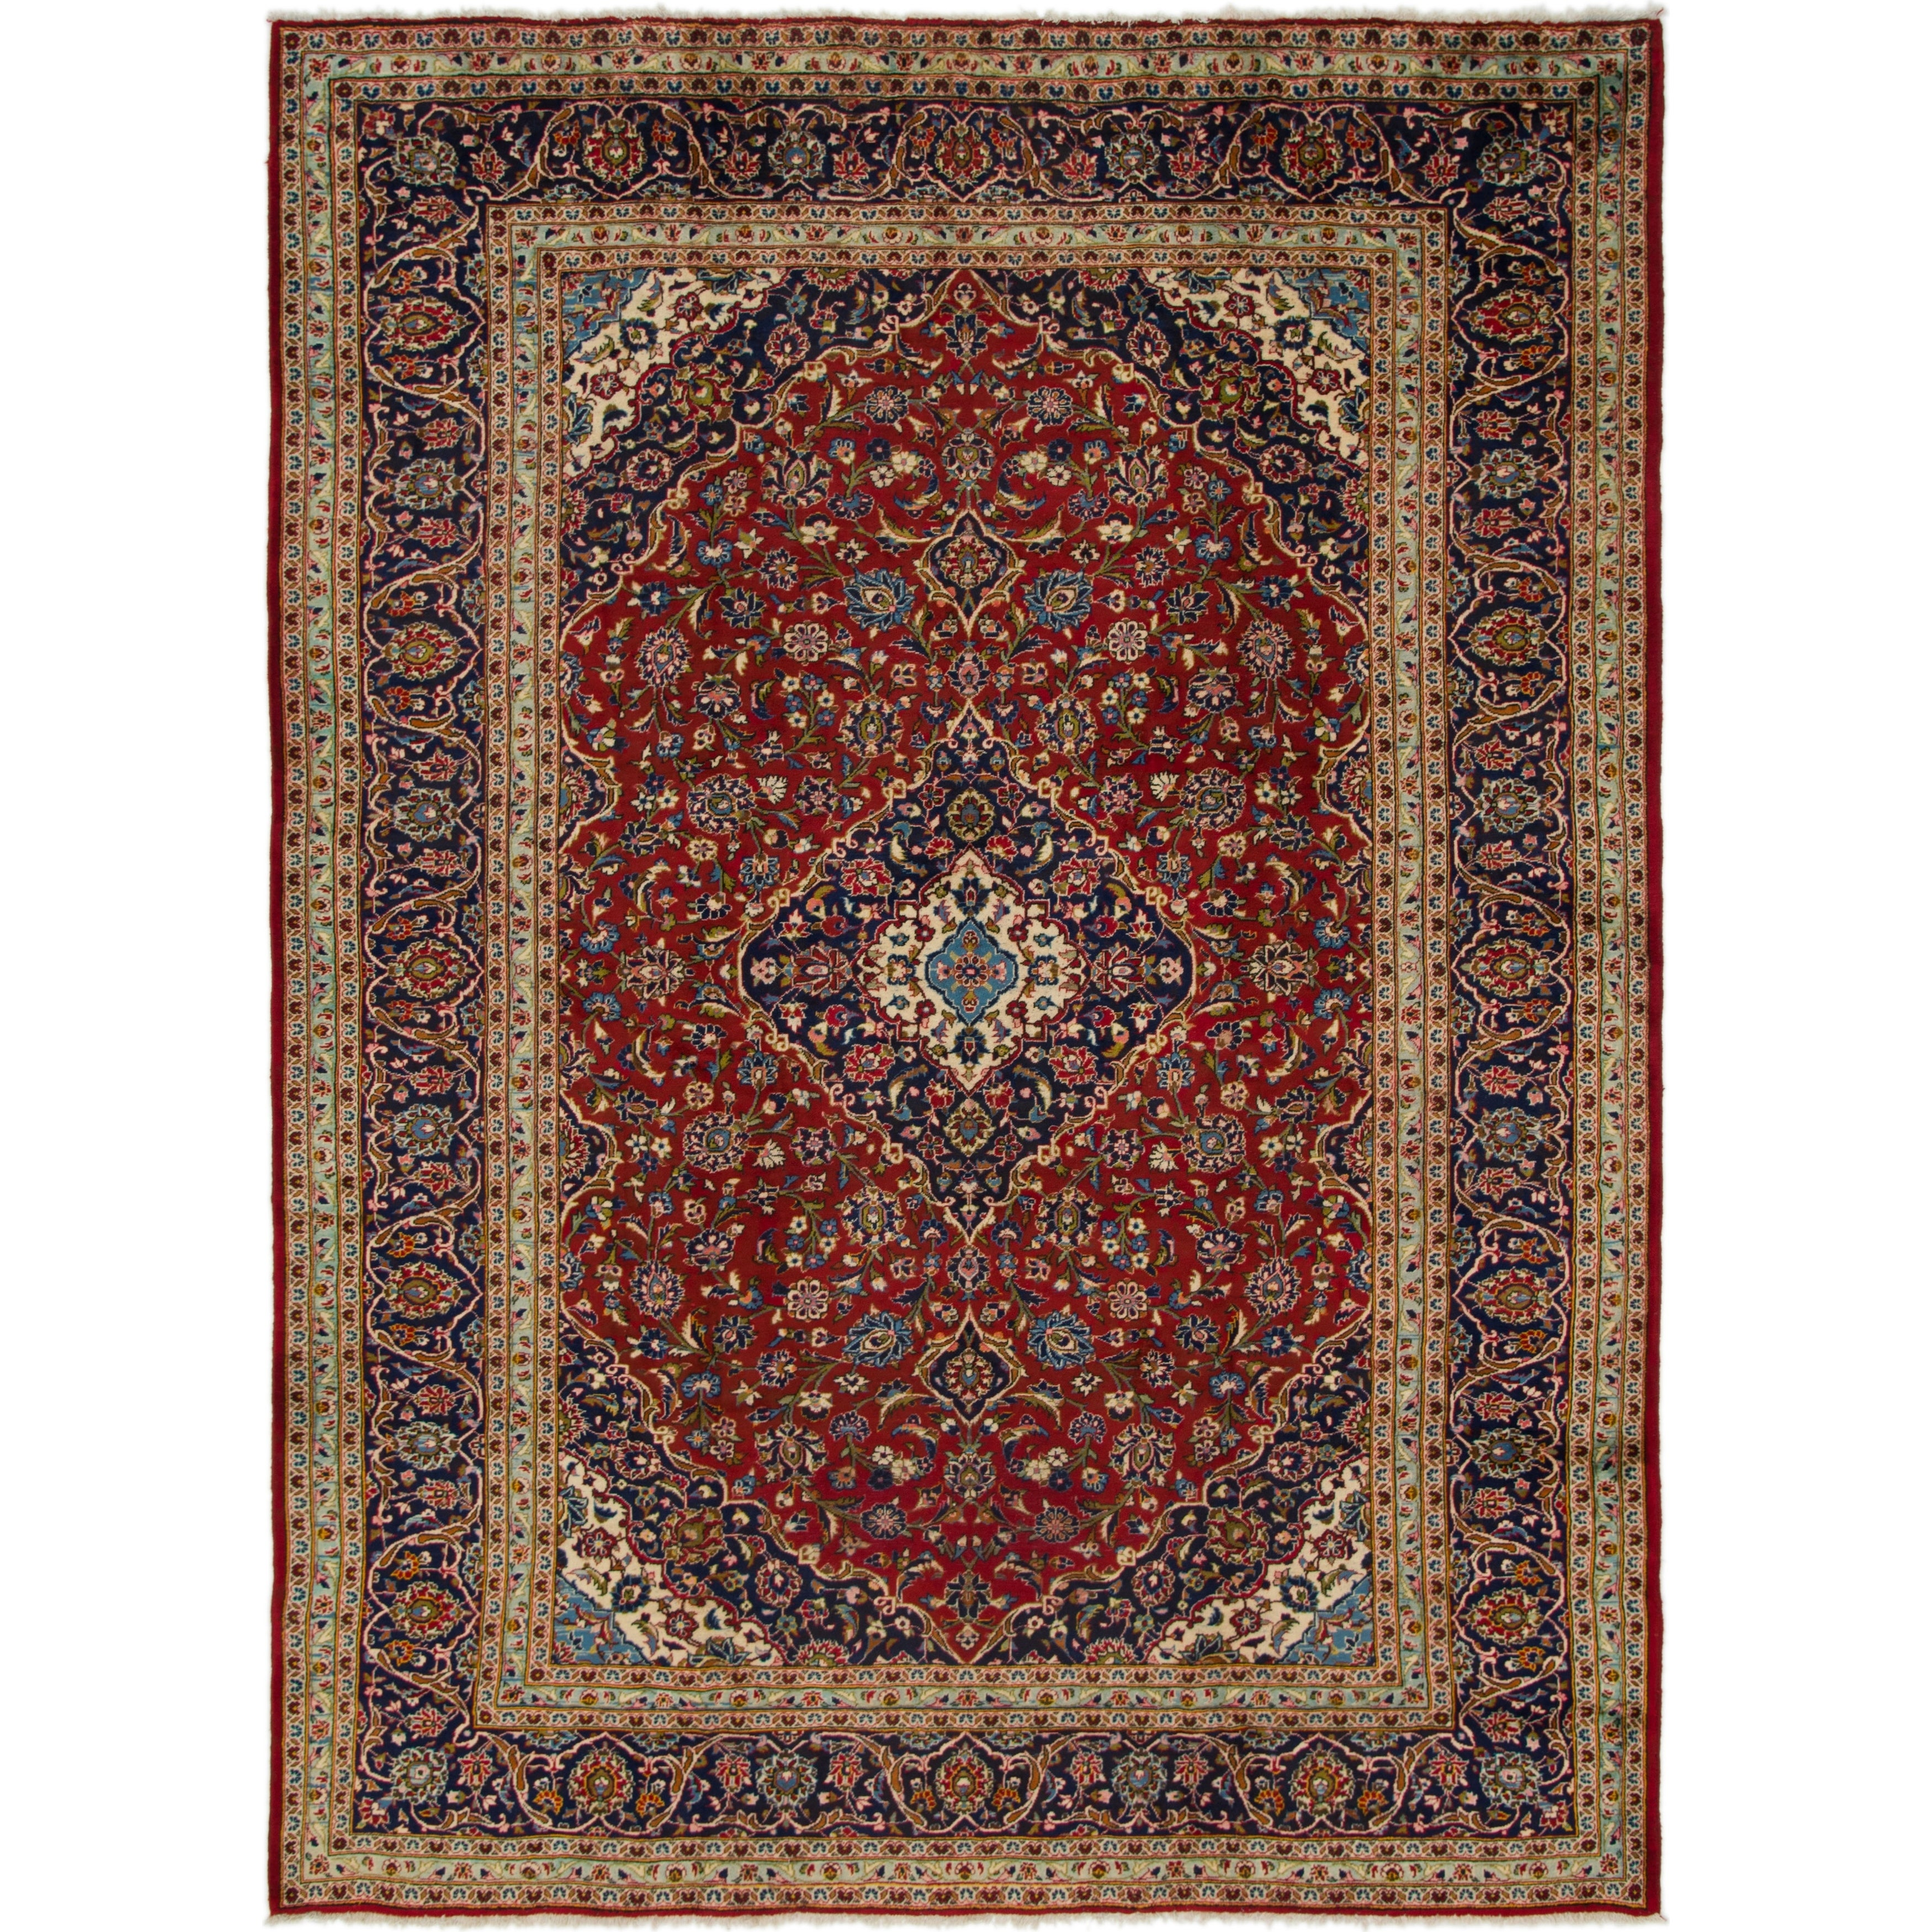 Hand Knotted Kashan Wool Area Rug - 9 5 x 12 10 (Red - 9 5 x 12 10)